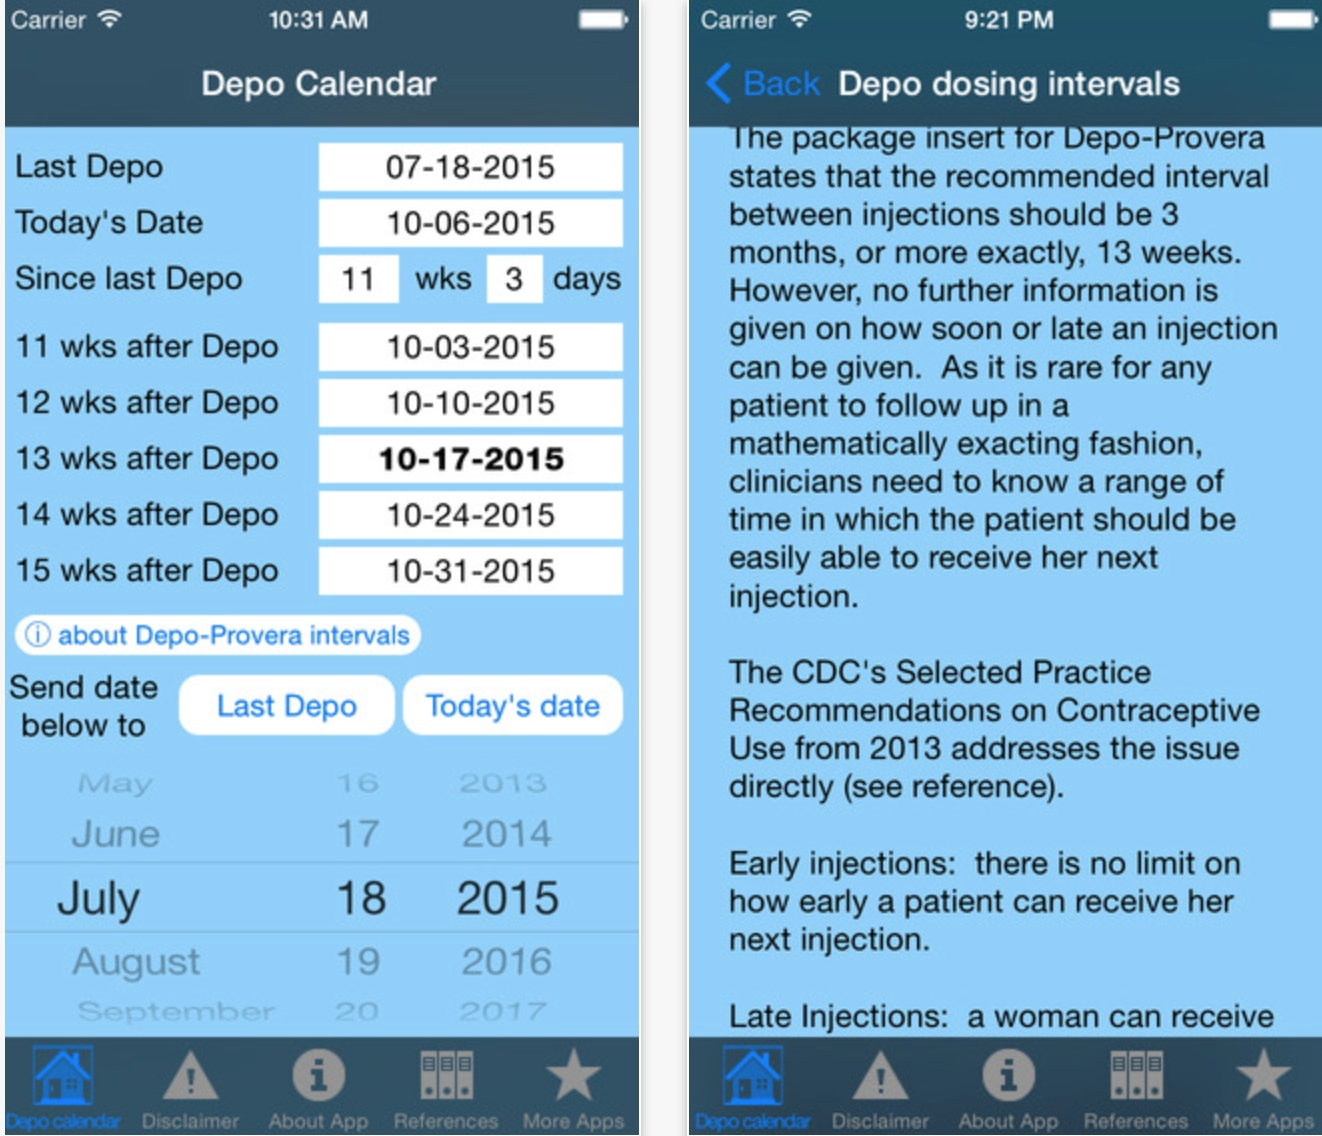 Depo Calendar App Could Significantly Improve Contraception  Depoprovera Injection Schedule